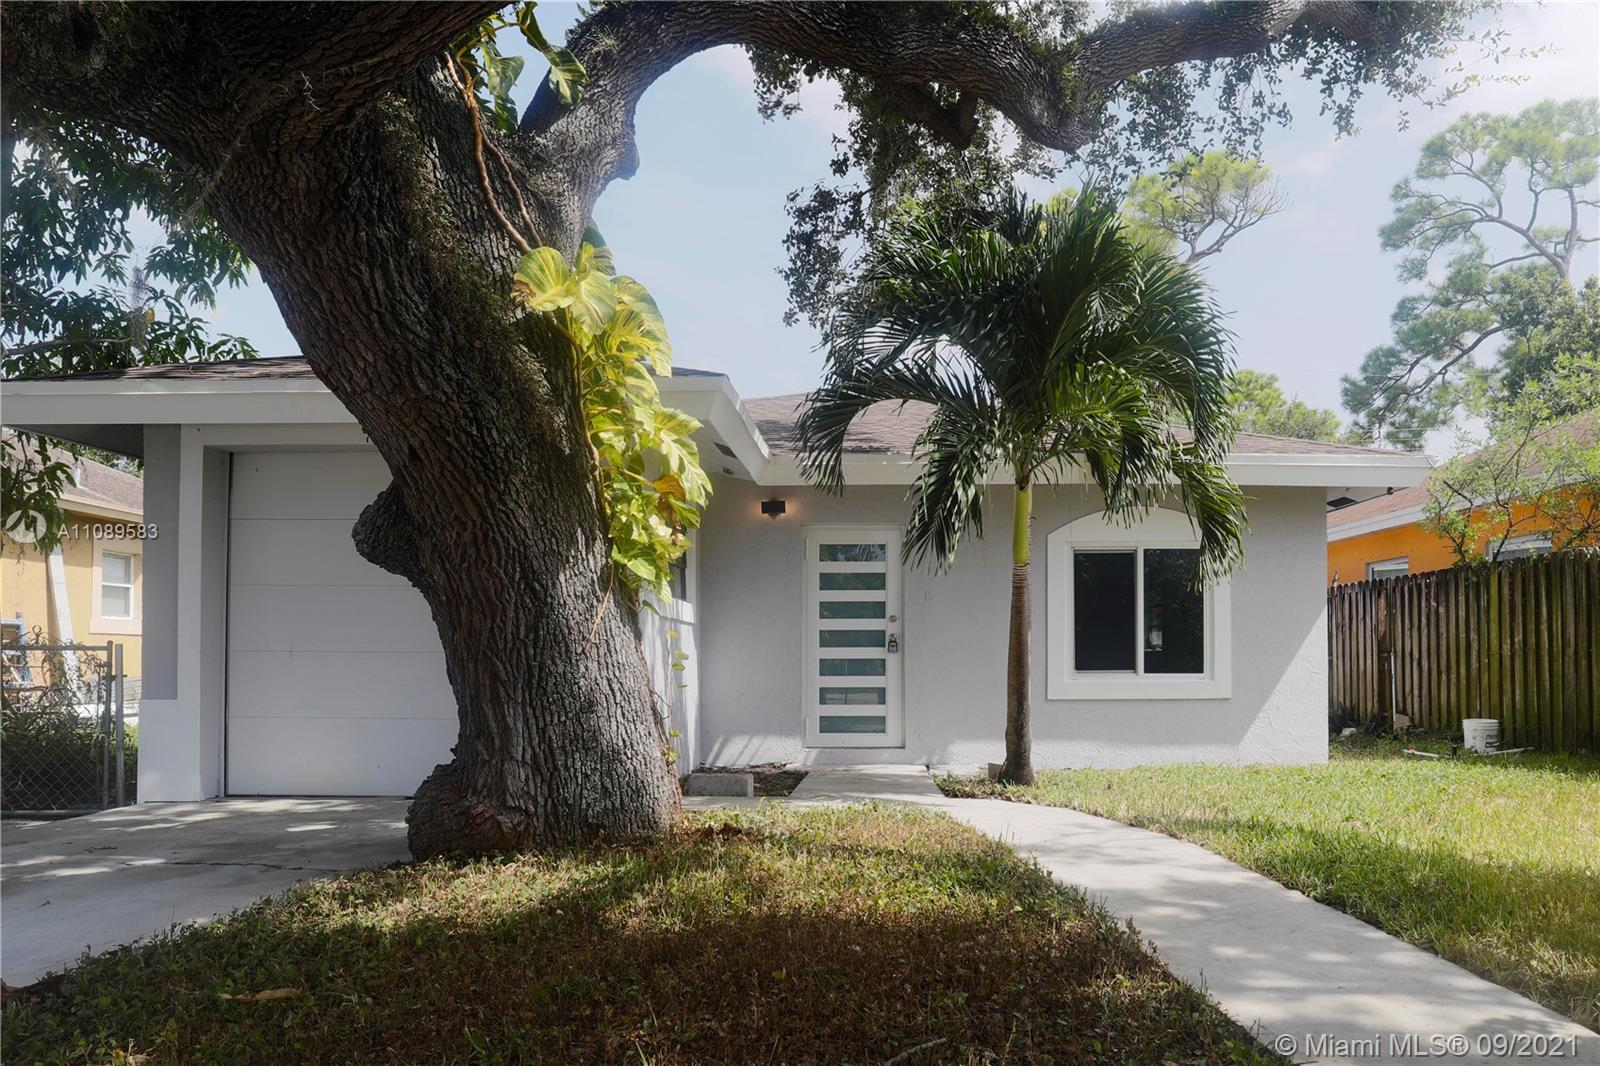 Don't miss out on this lovely fully renovated 4 bedroom 2 bath home in the Washington Park area of F